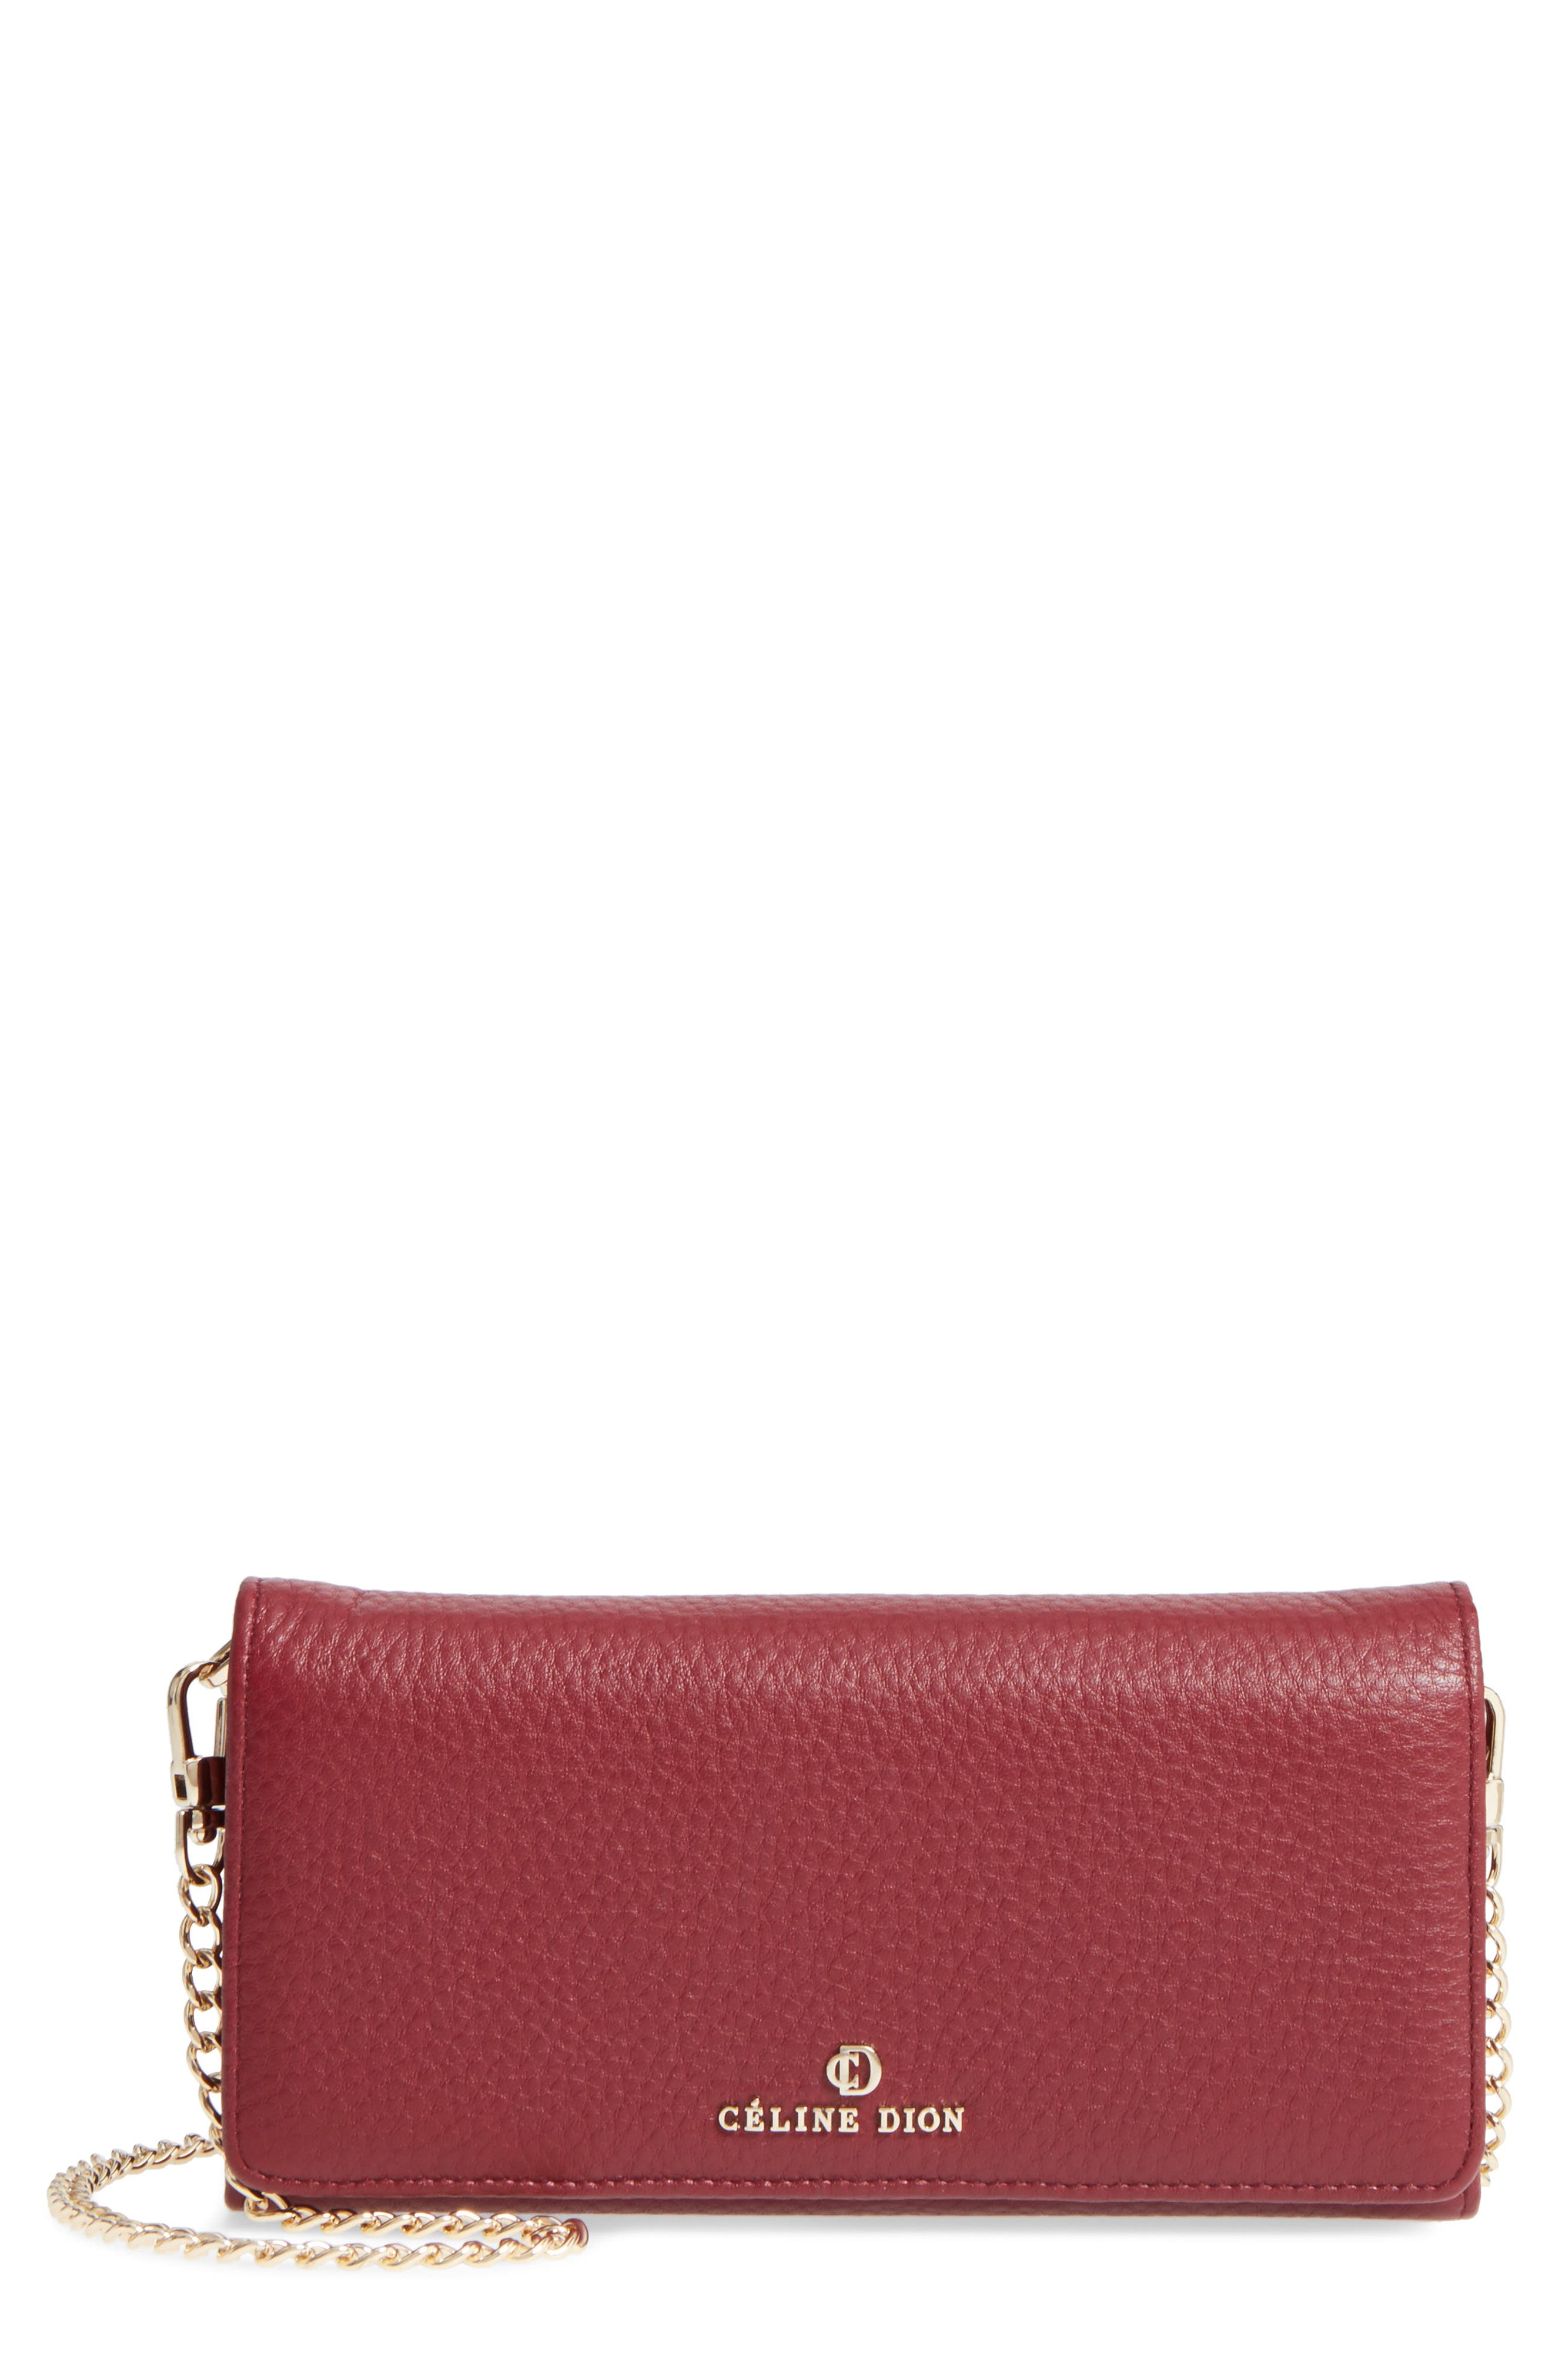 Alternate Image 1 Selected - Céline Dion Adagio Leather Crossbody Wallet